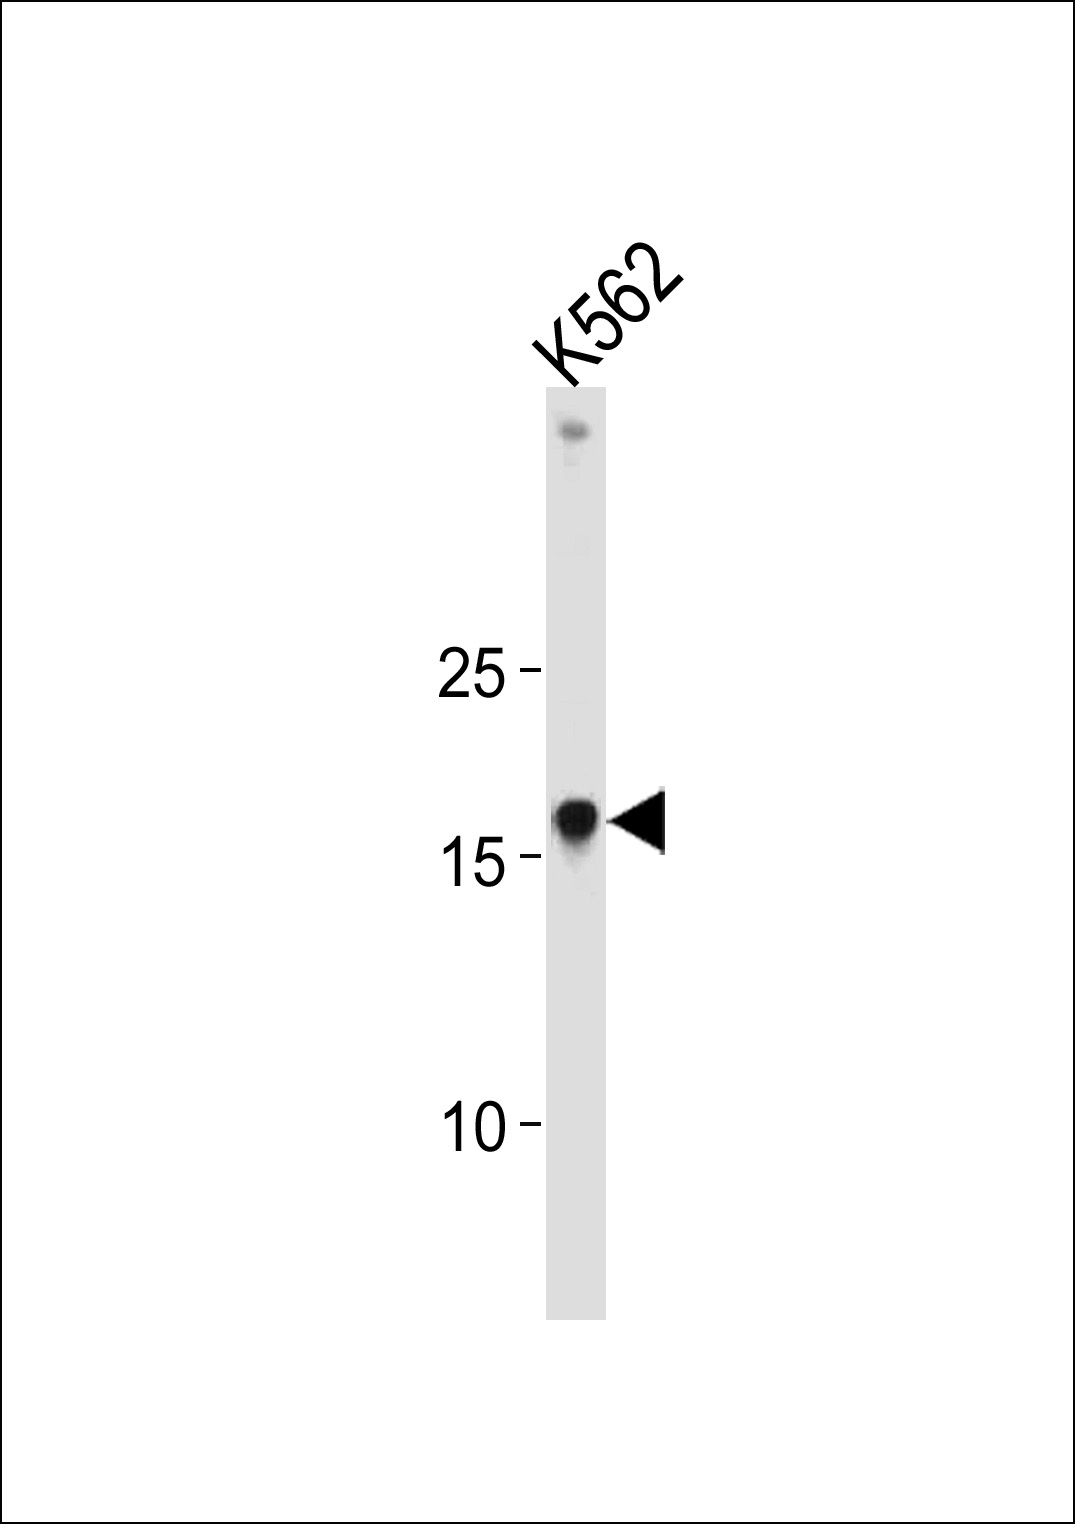 HMGA1 Antibody western blot of K562 cell line lysates (35 ug/lane). The HMGA1 antibody detected the HMGA1 protein (arrow).